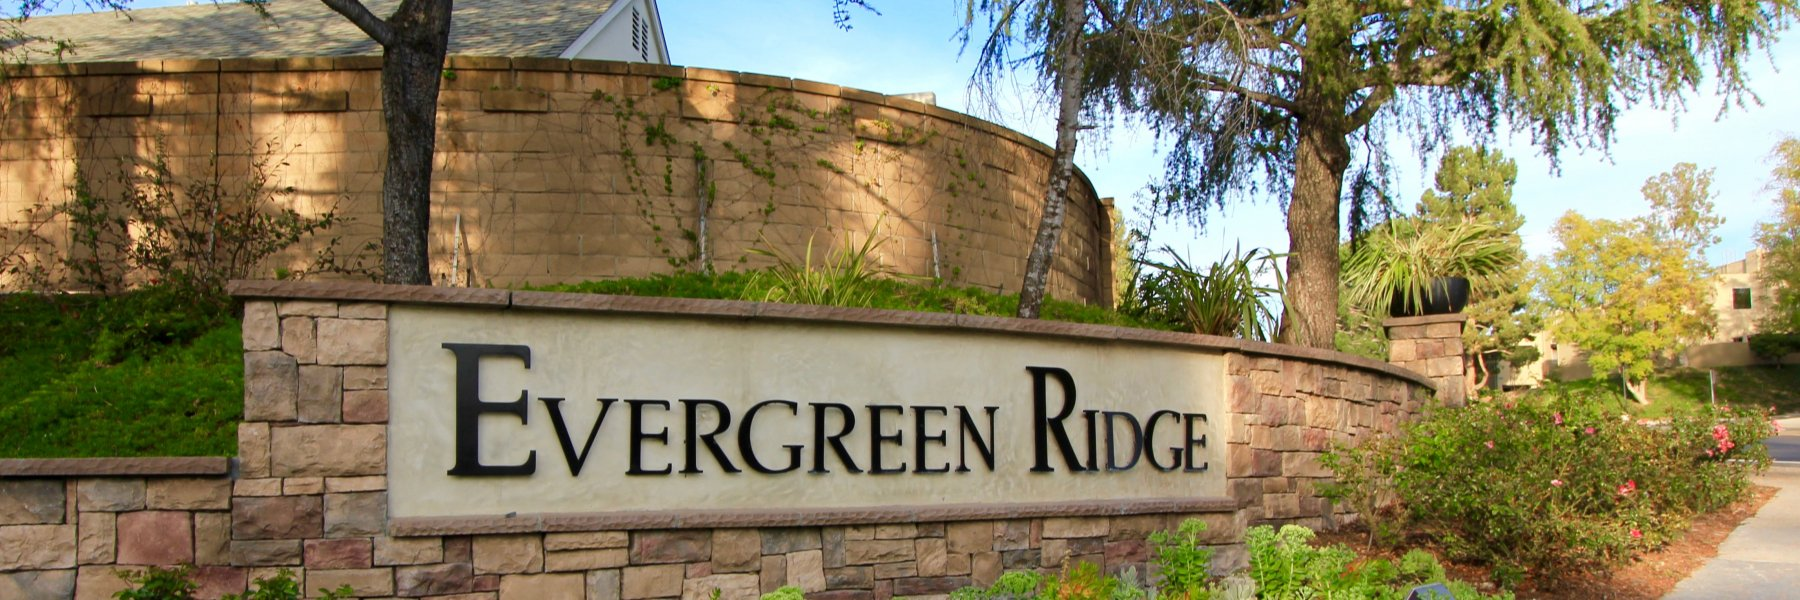 Evergreen Ridge is a community of homes in Mission Viejo California